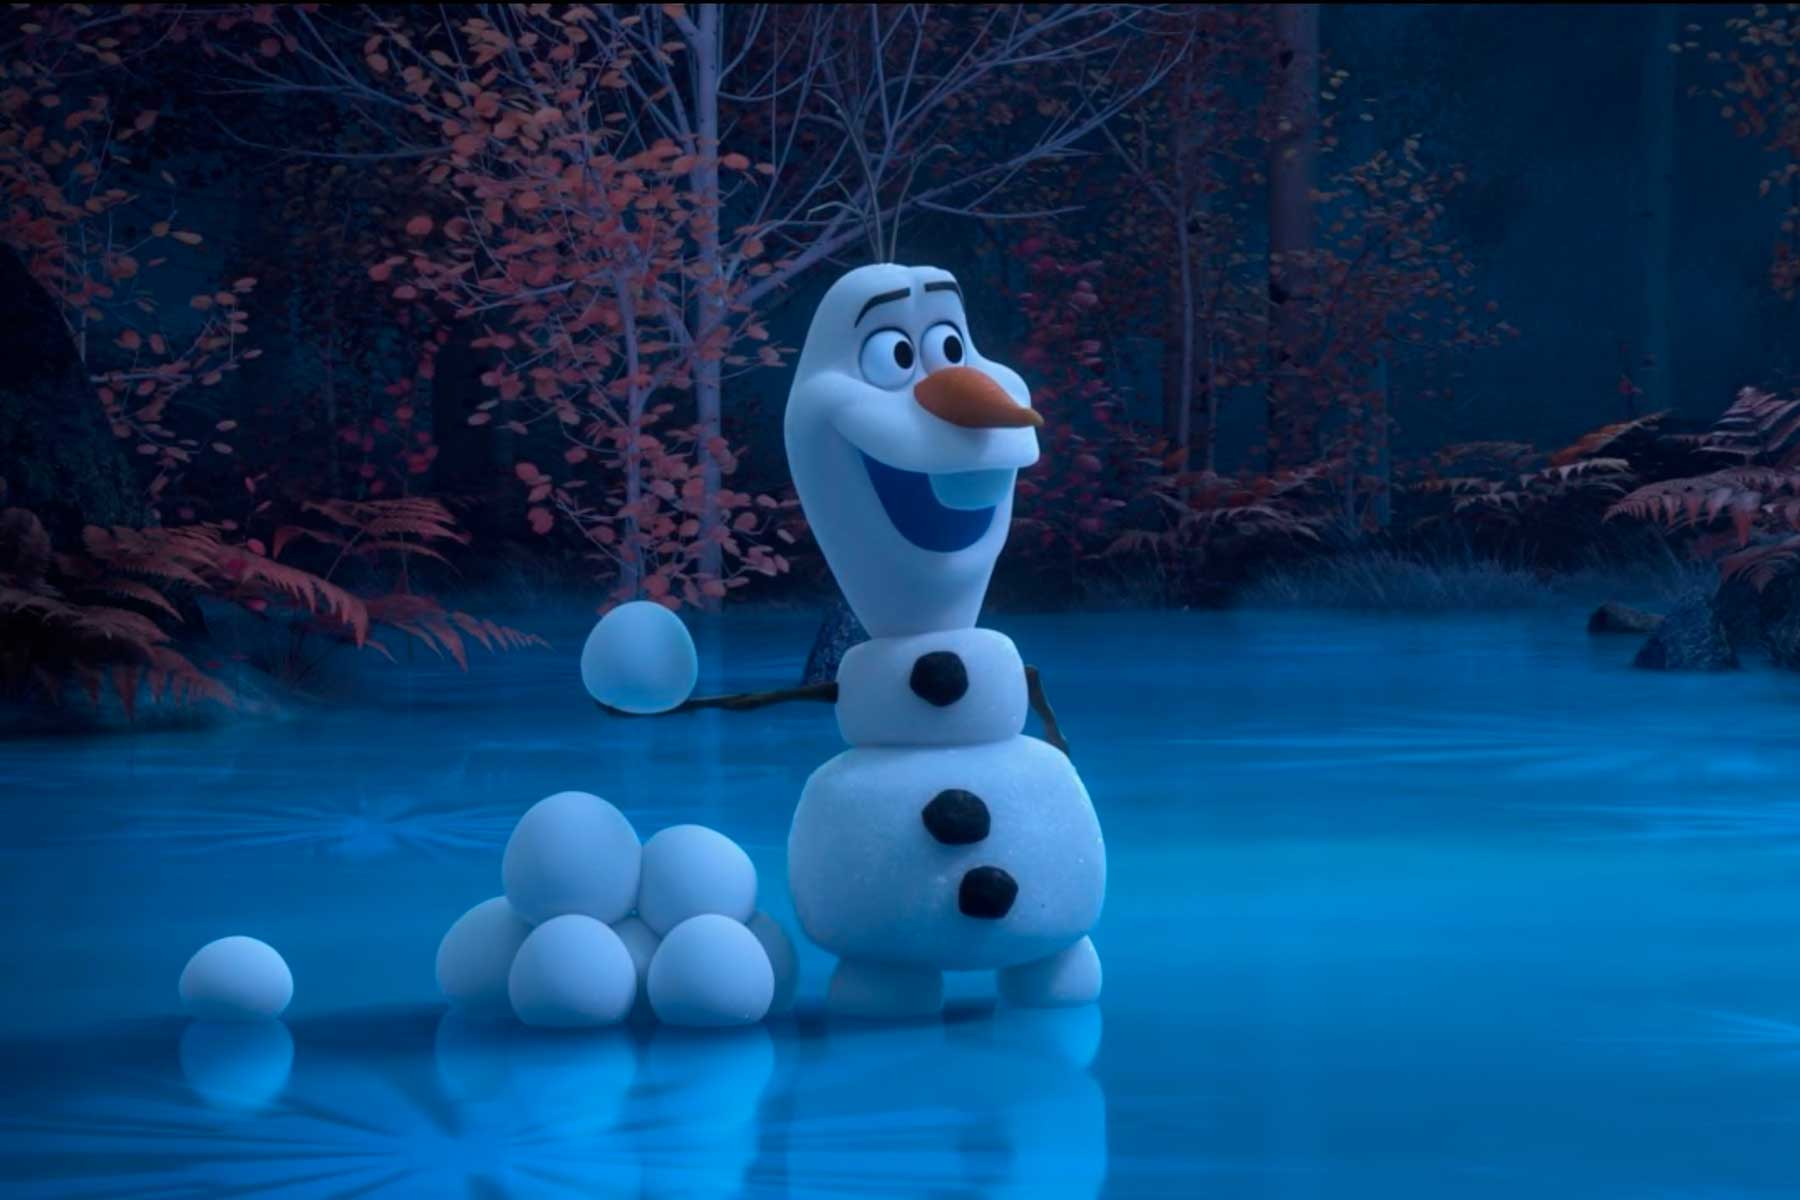 Disney's character Olaf